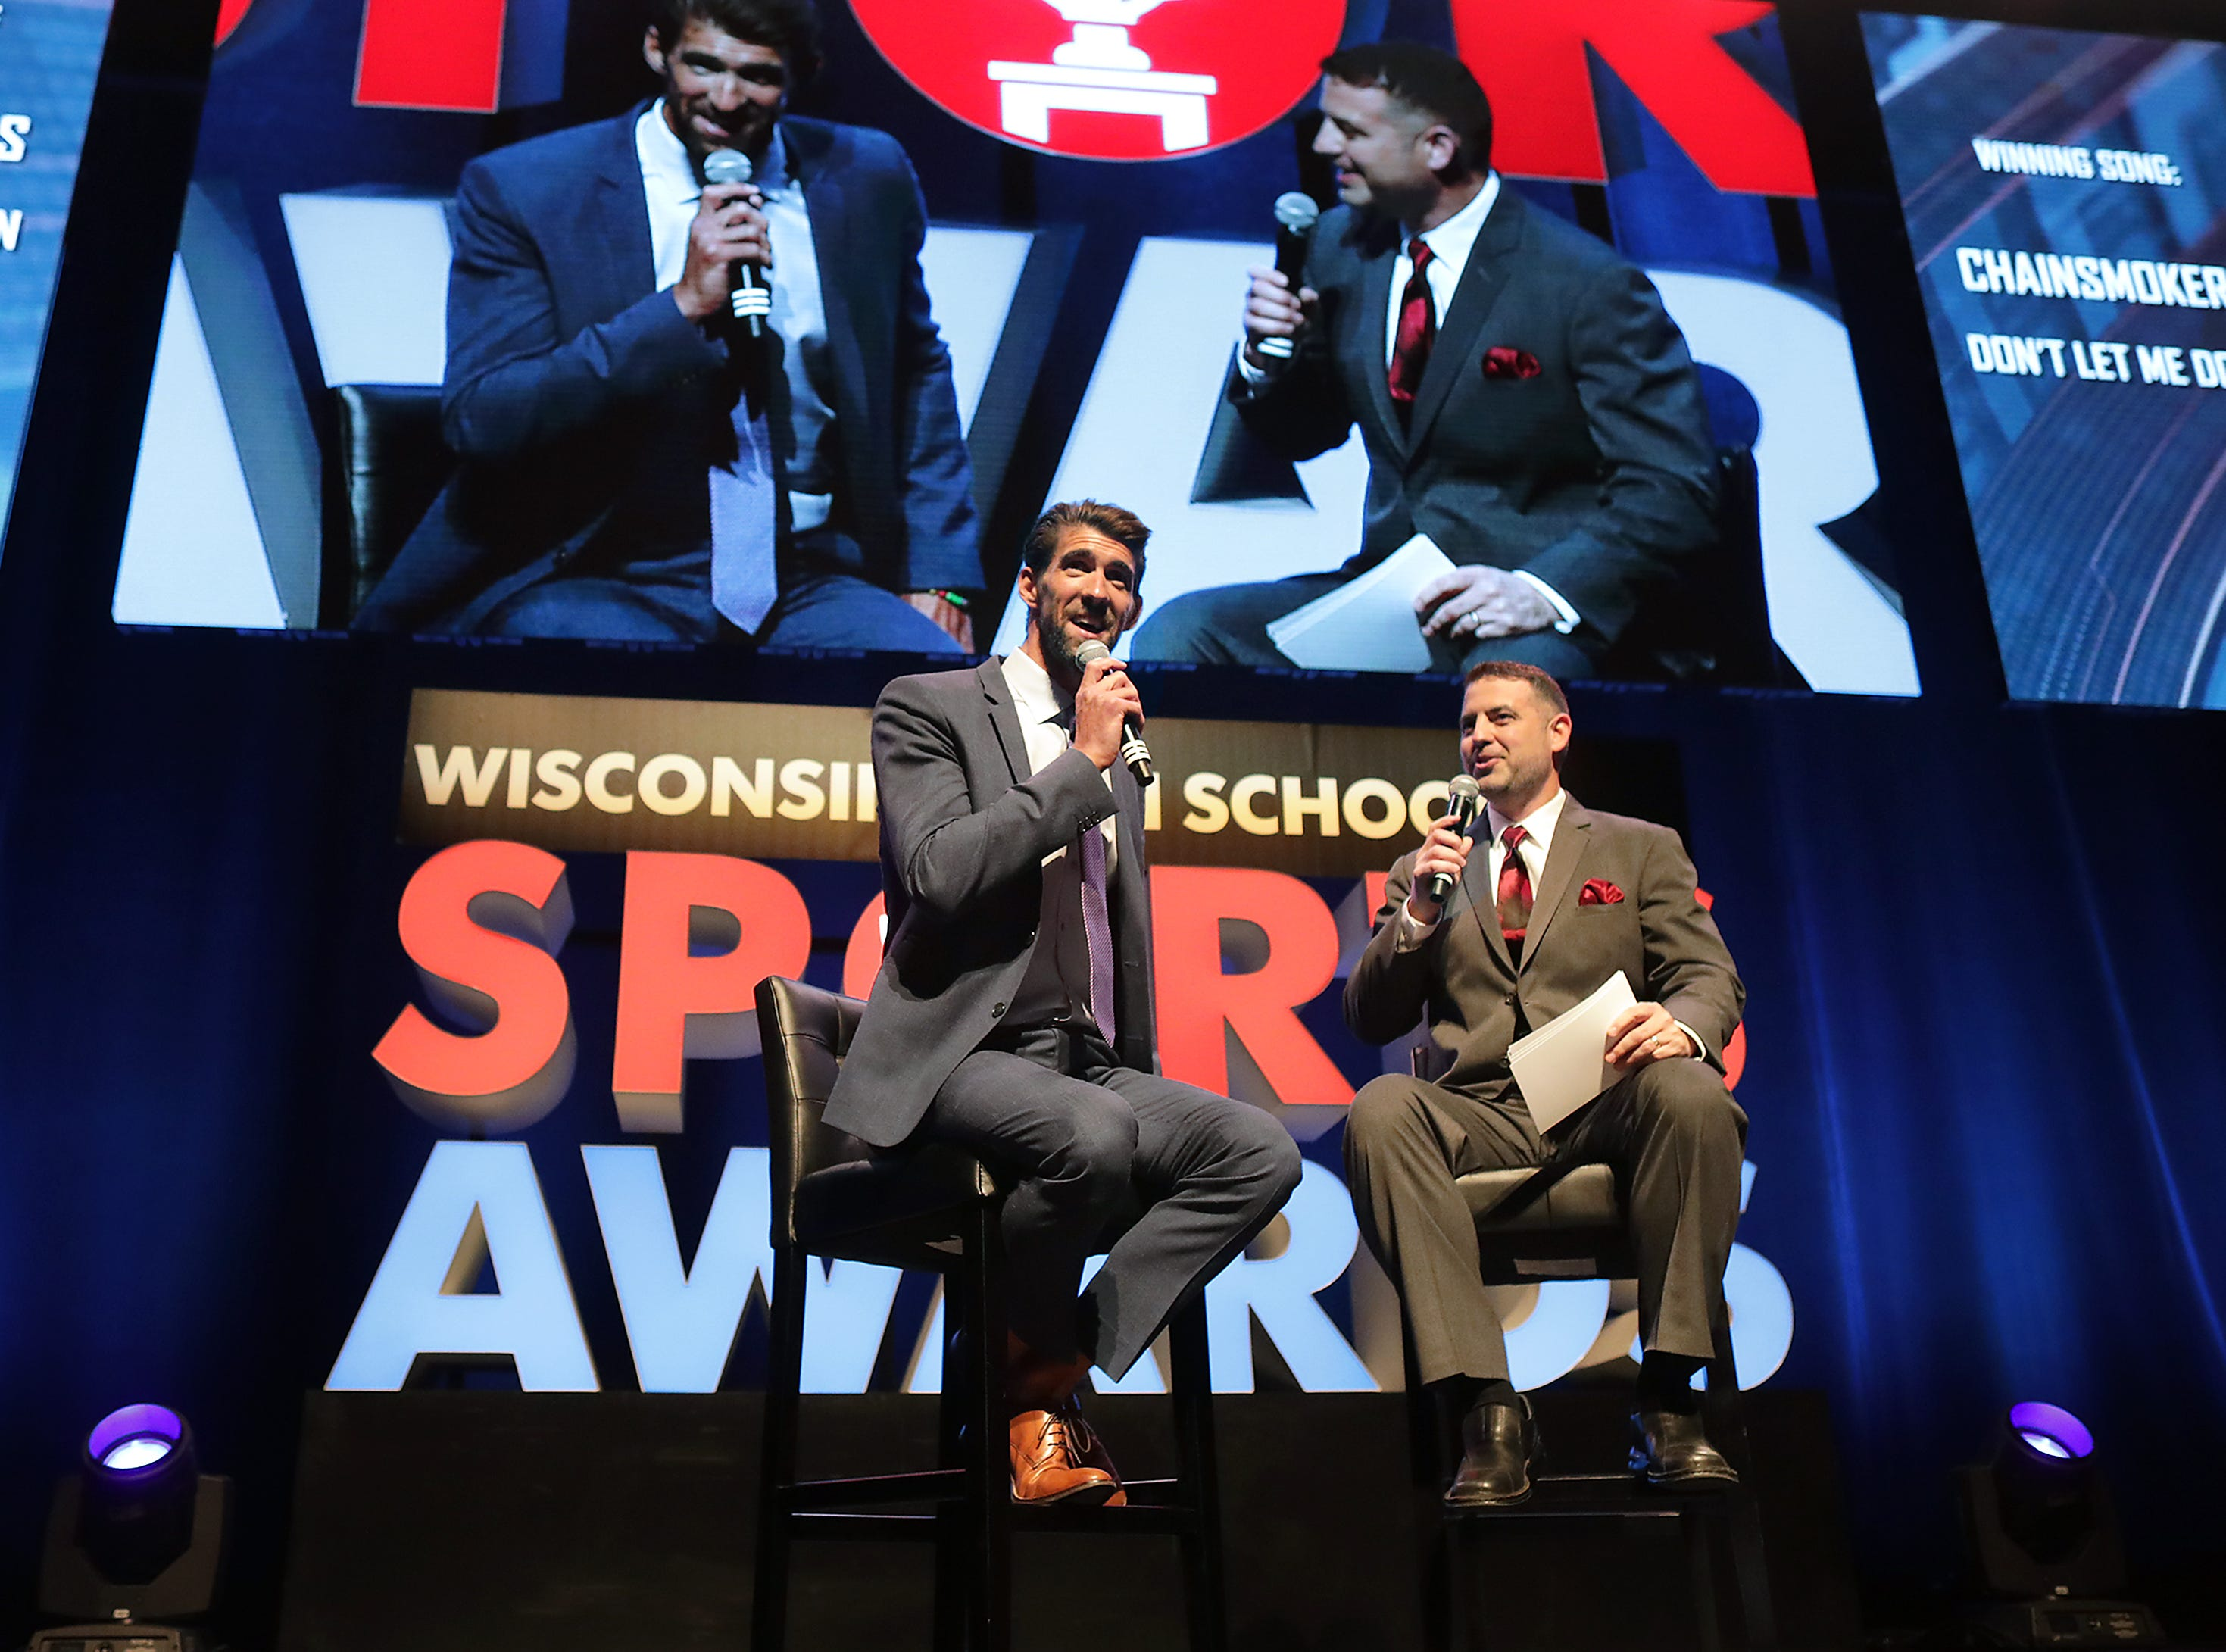 Olympic champion Michael Phelps talks with host Brett Christopherson during the Wisconsin High School Sports Awards show at the Fox Cities Performing Arts Center on Wednesday, May 8, 2019, in Appleton, Wis. The annual event was presented by USA TODAY NETWORK-Wisconsin.  Wm. Glasheen/USA TODAY NETWORK-Wisconsin.